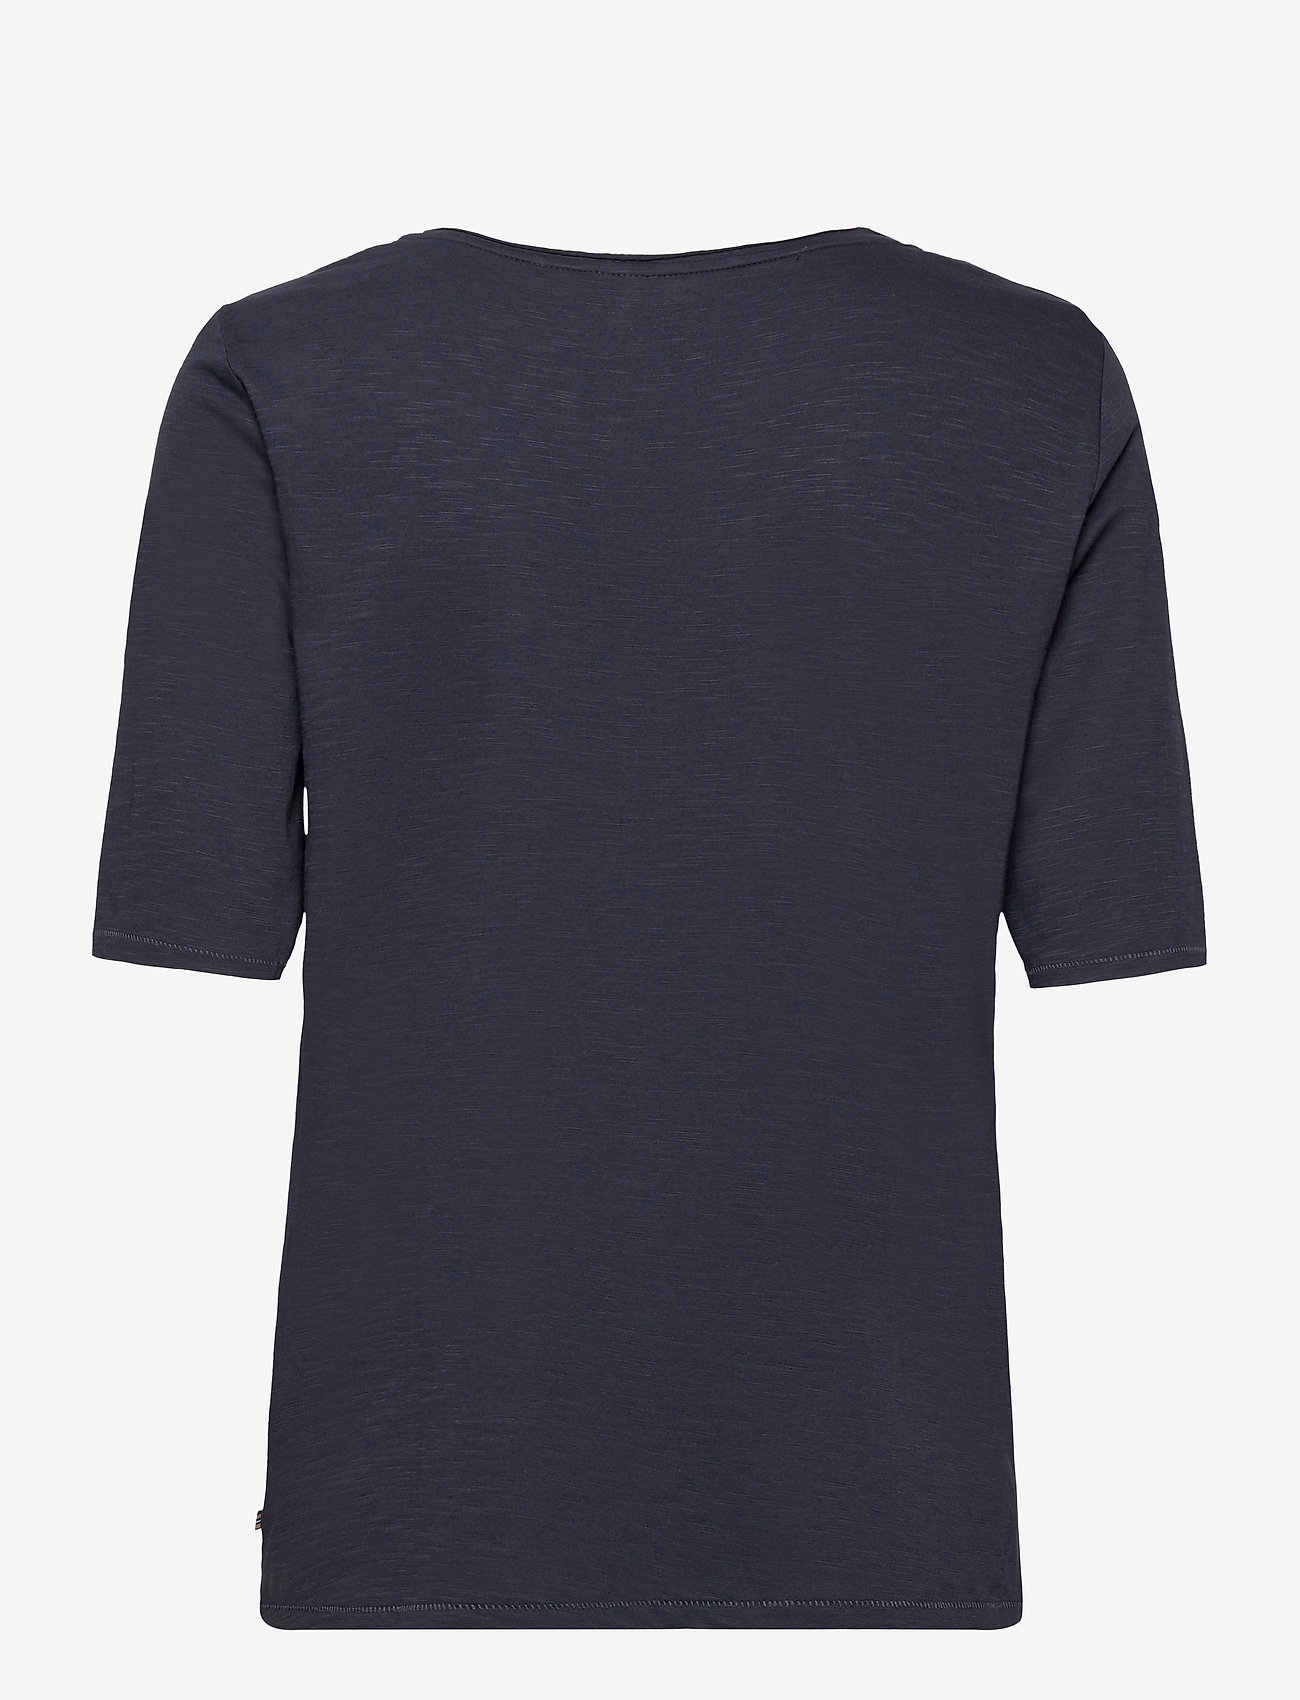 Esprit Casual - T-Shirts - t-shirt & tops - navy - 1